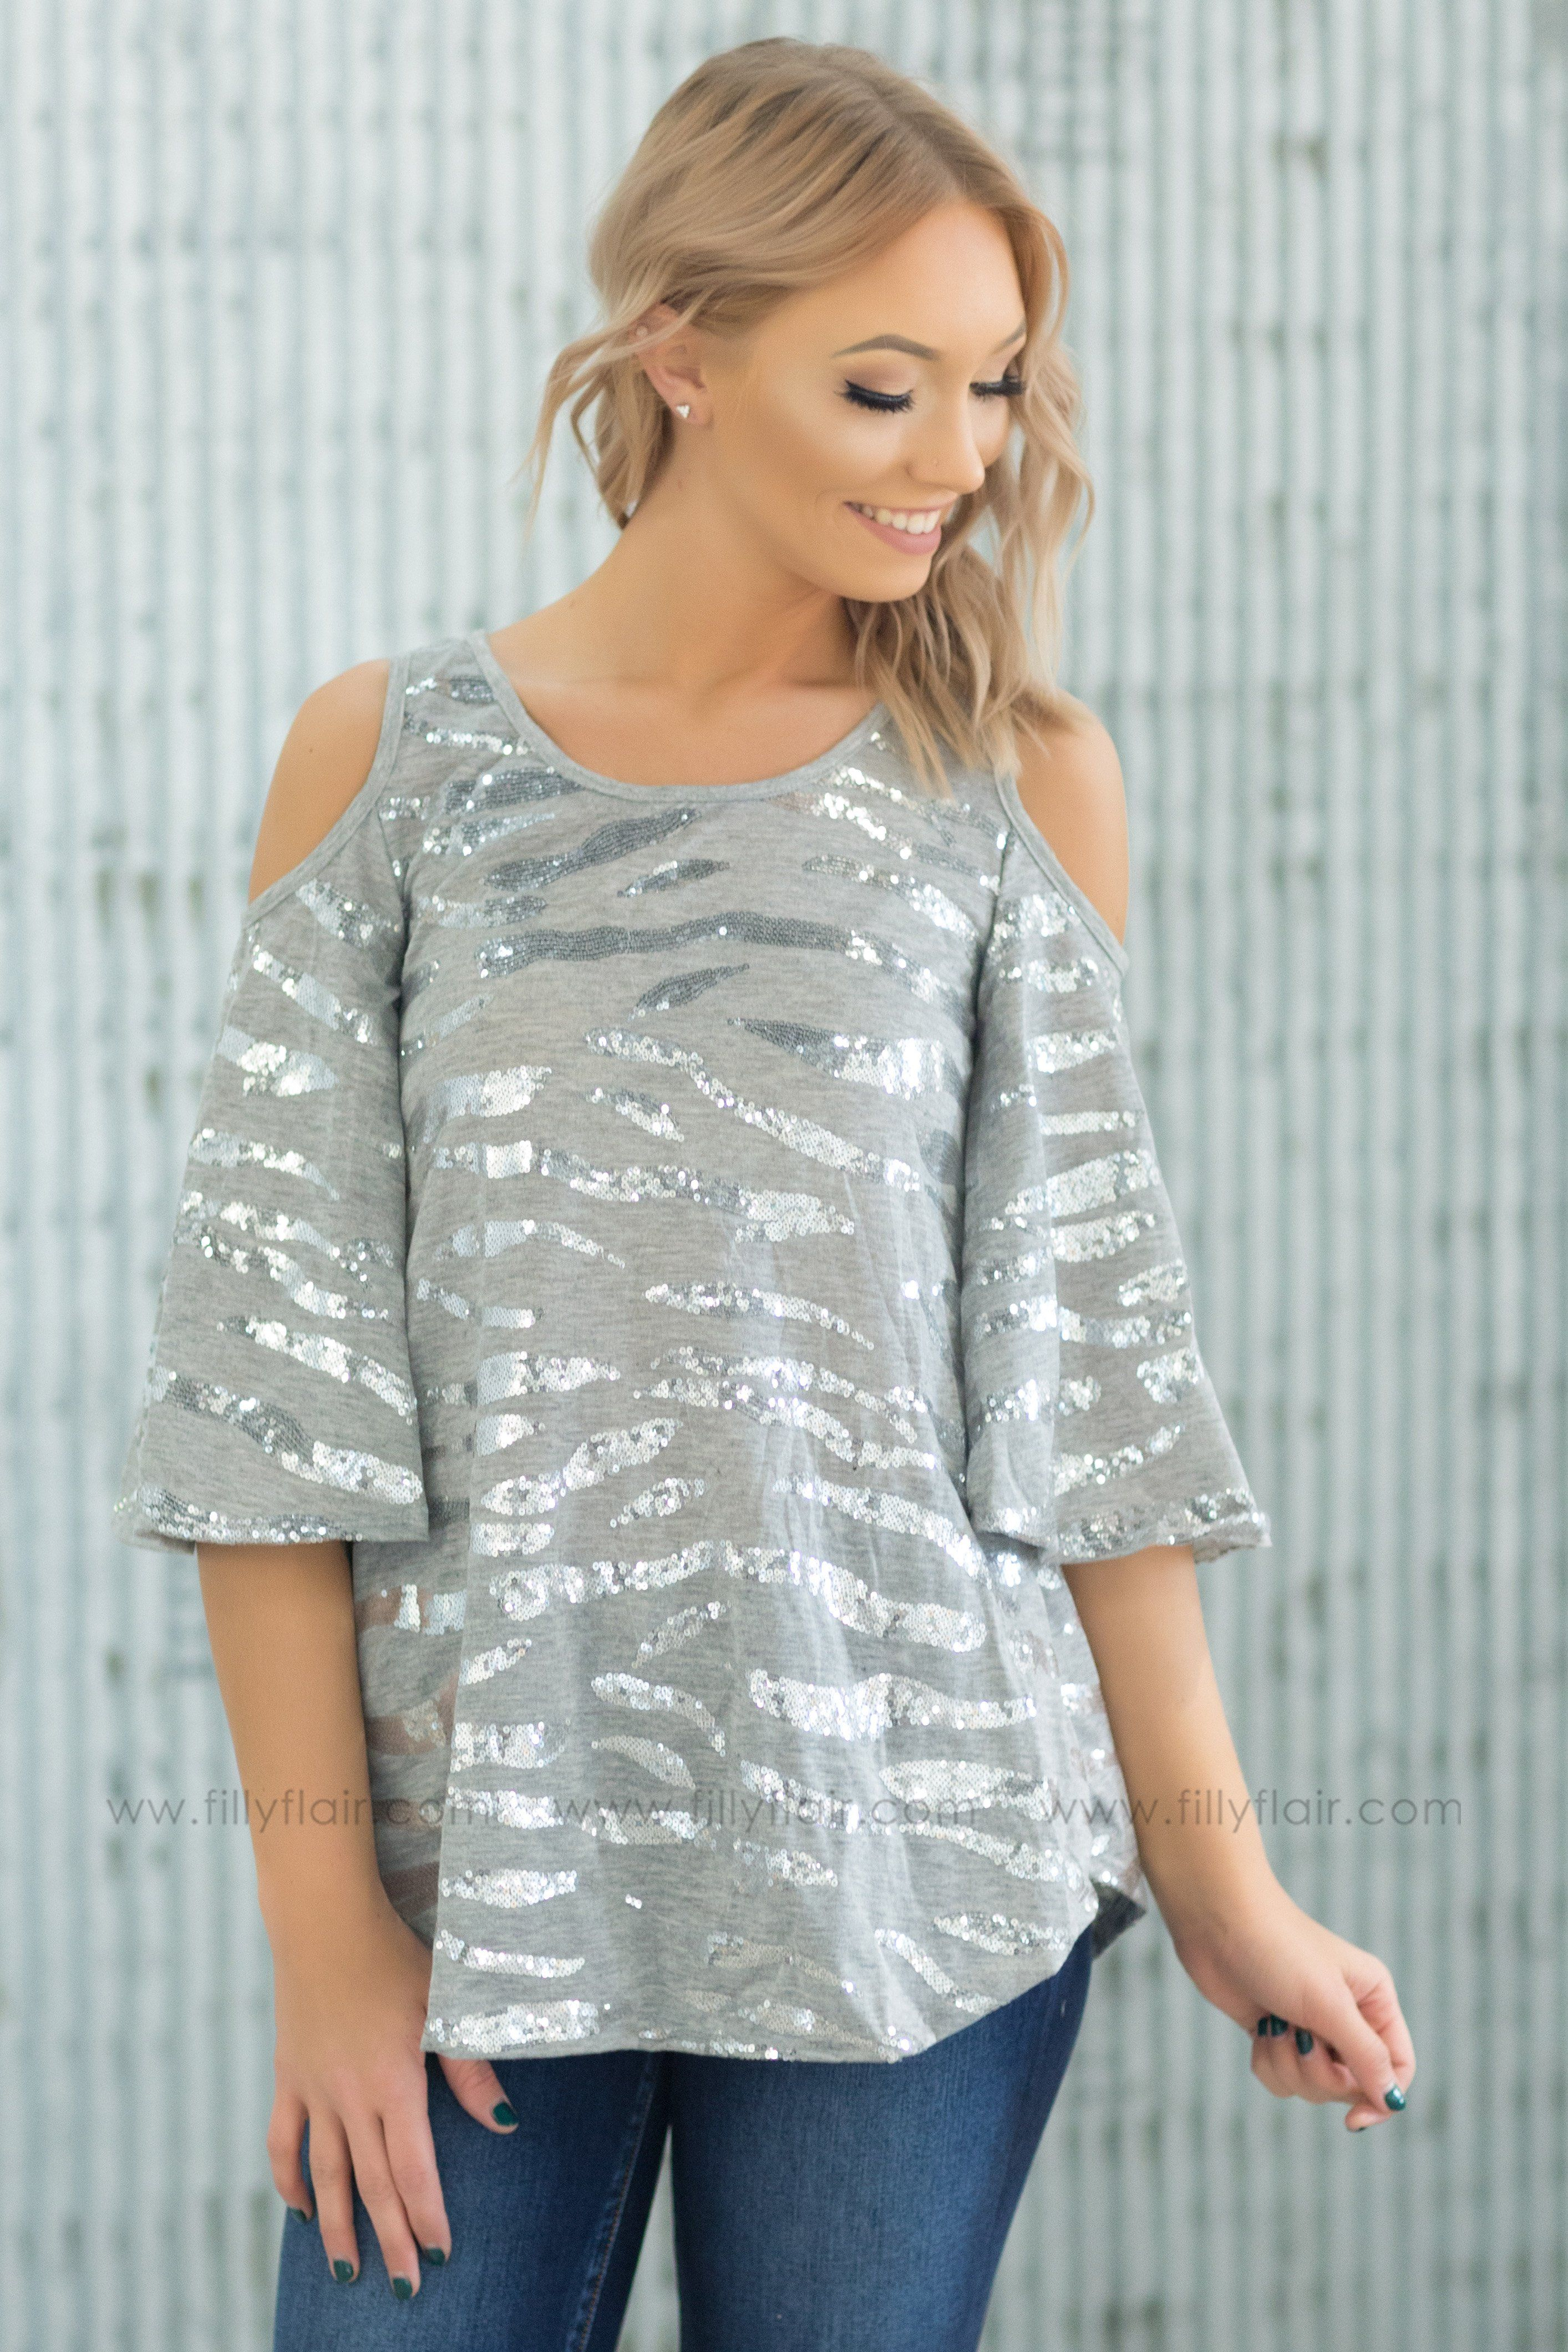 Shine Bright Silver Sequin Cold Shoulder Top in Grey - Filly Flair